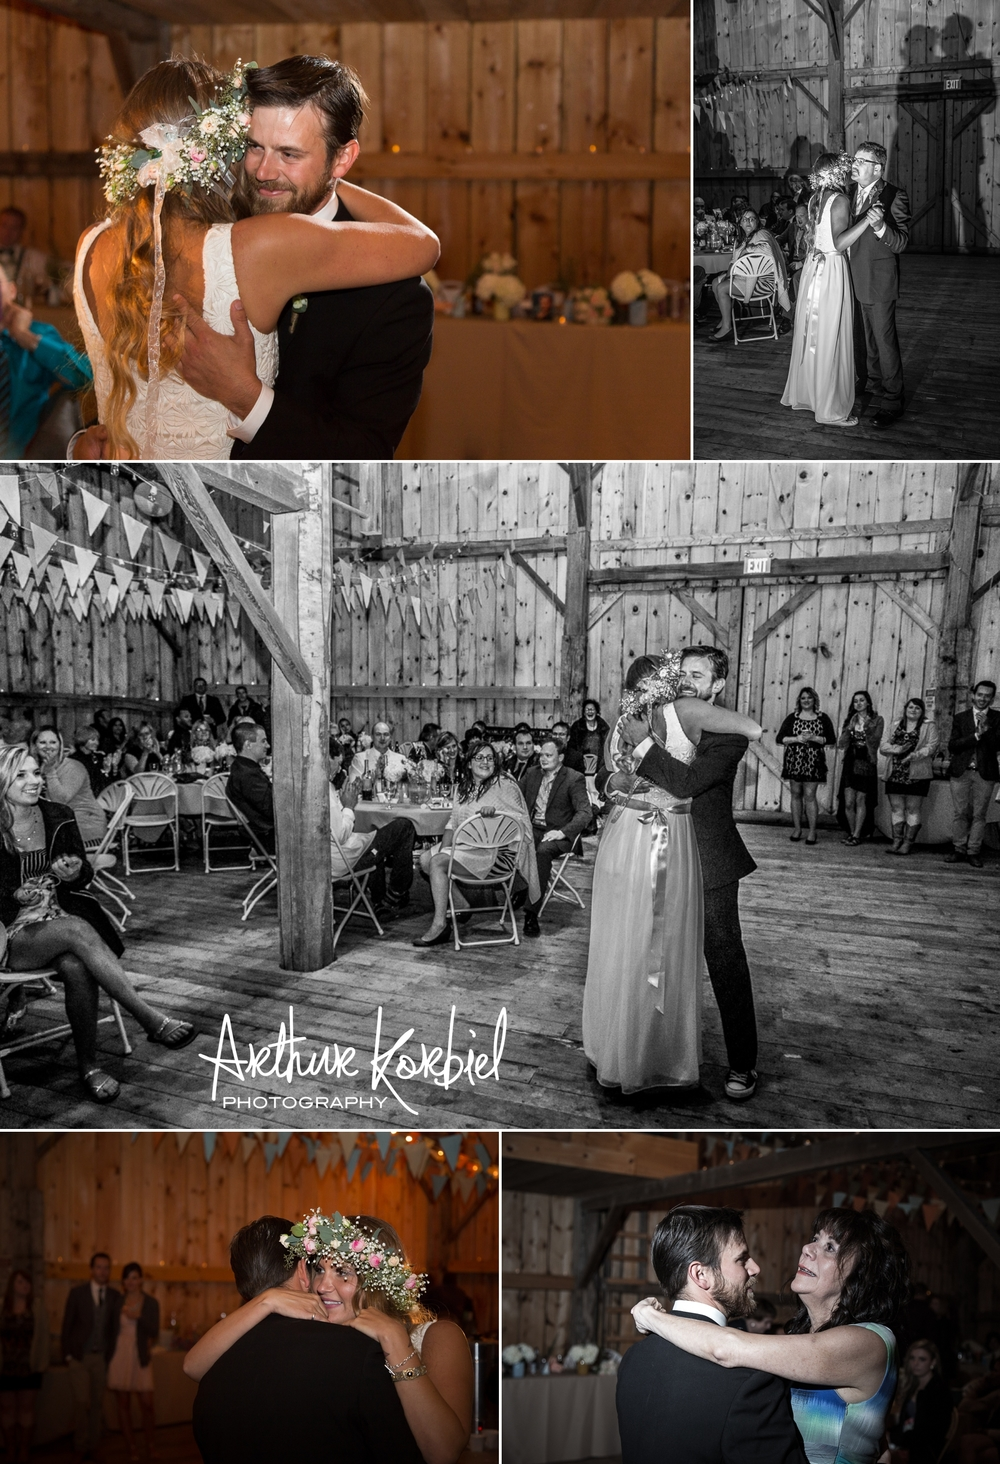 Arthur Korbiel Photography - London Engagement Photographer - Sauble Beach Barn Wedding - Samantha & Dan_014.jpg